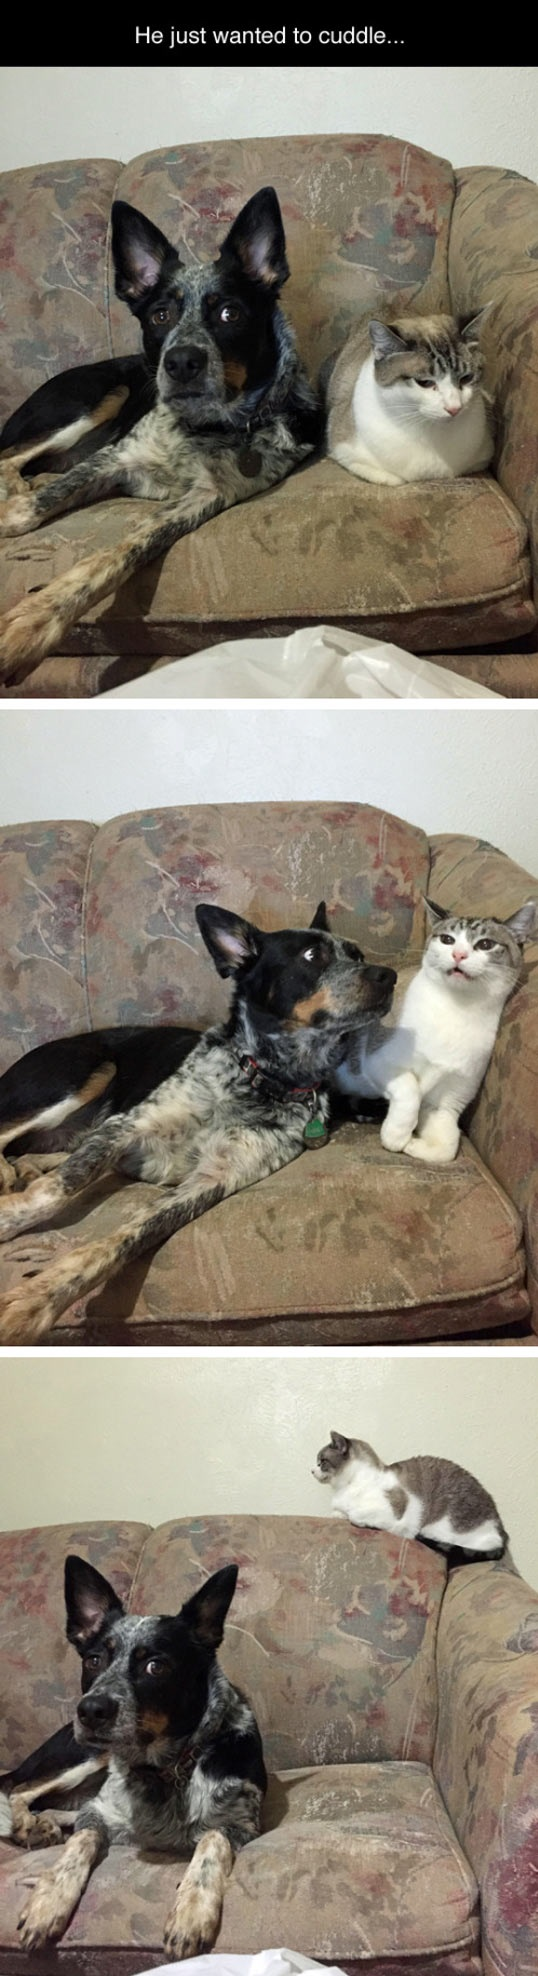 cute-cat-dog-cuddling-couch